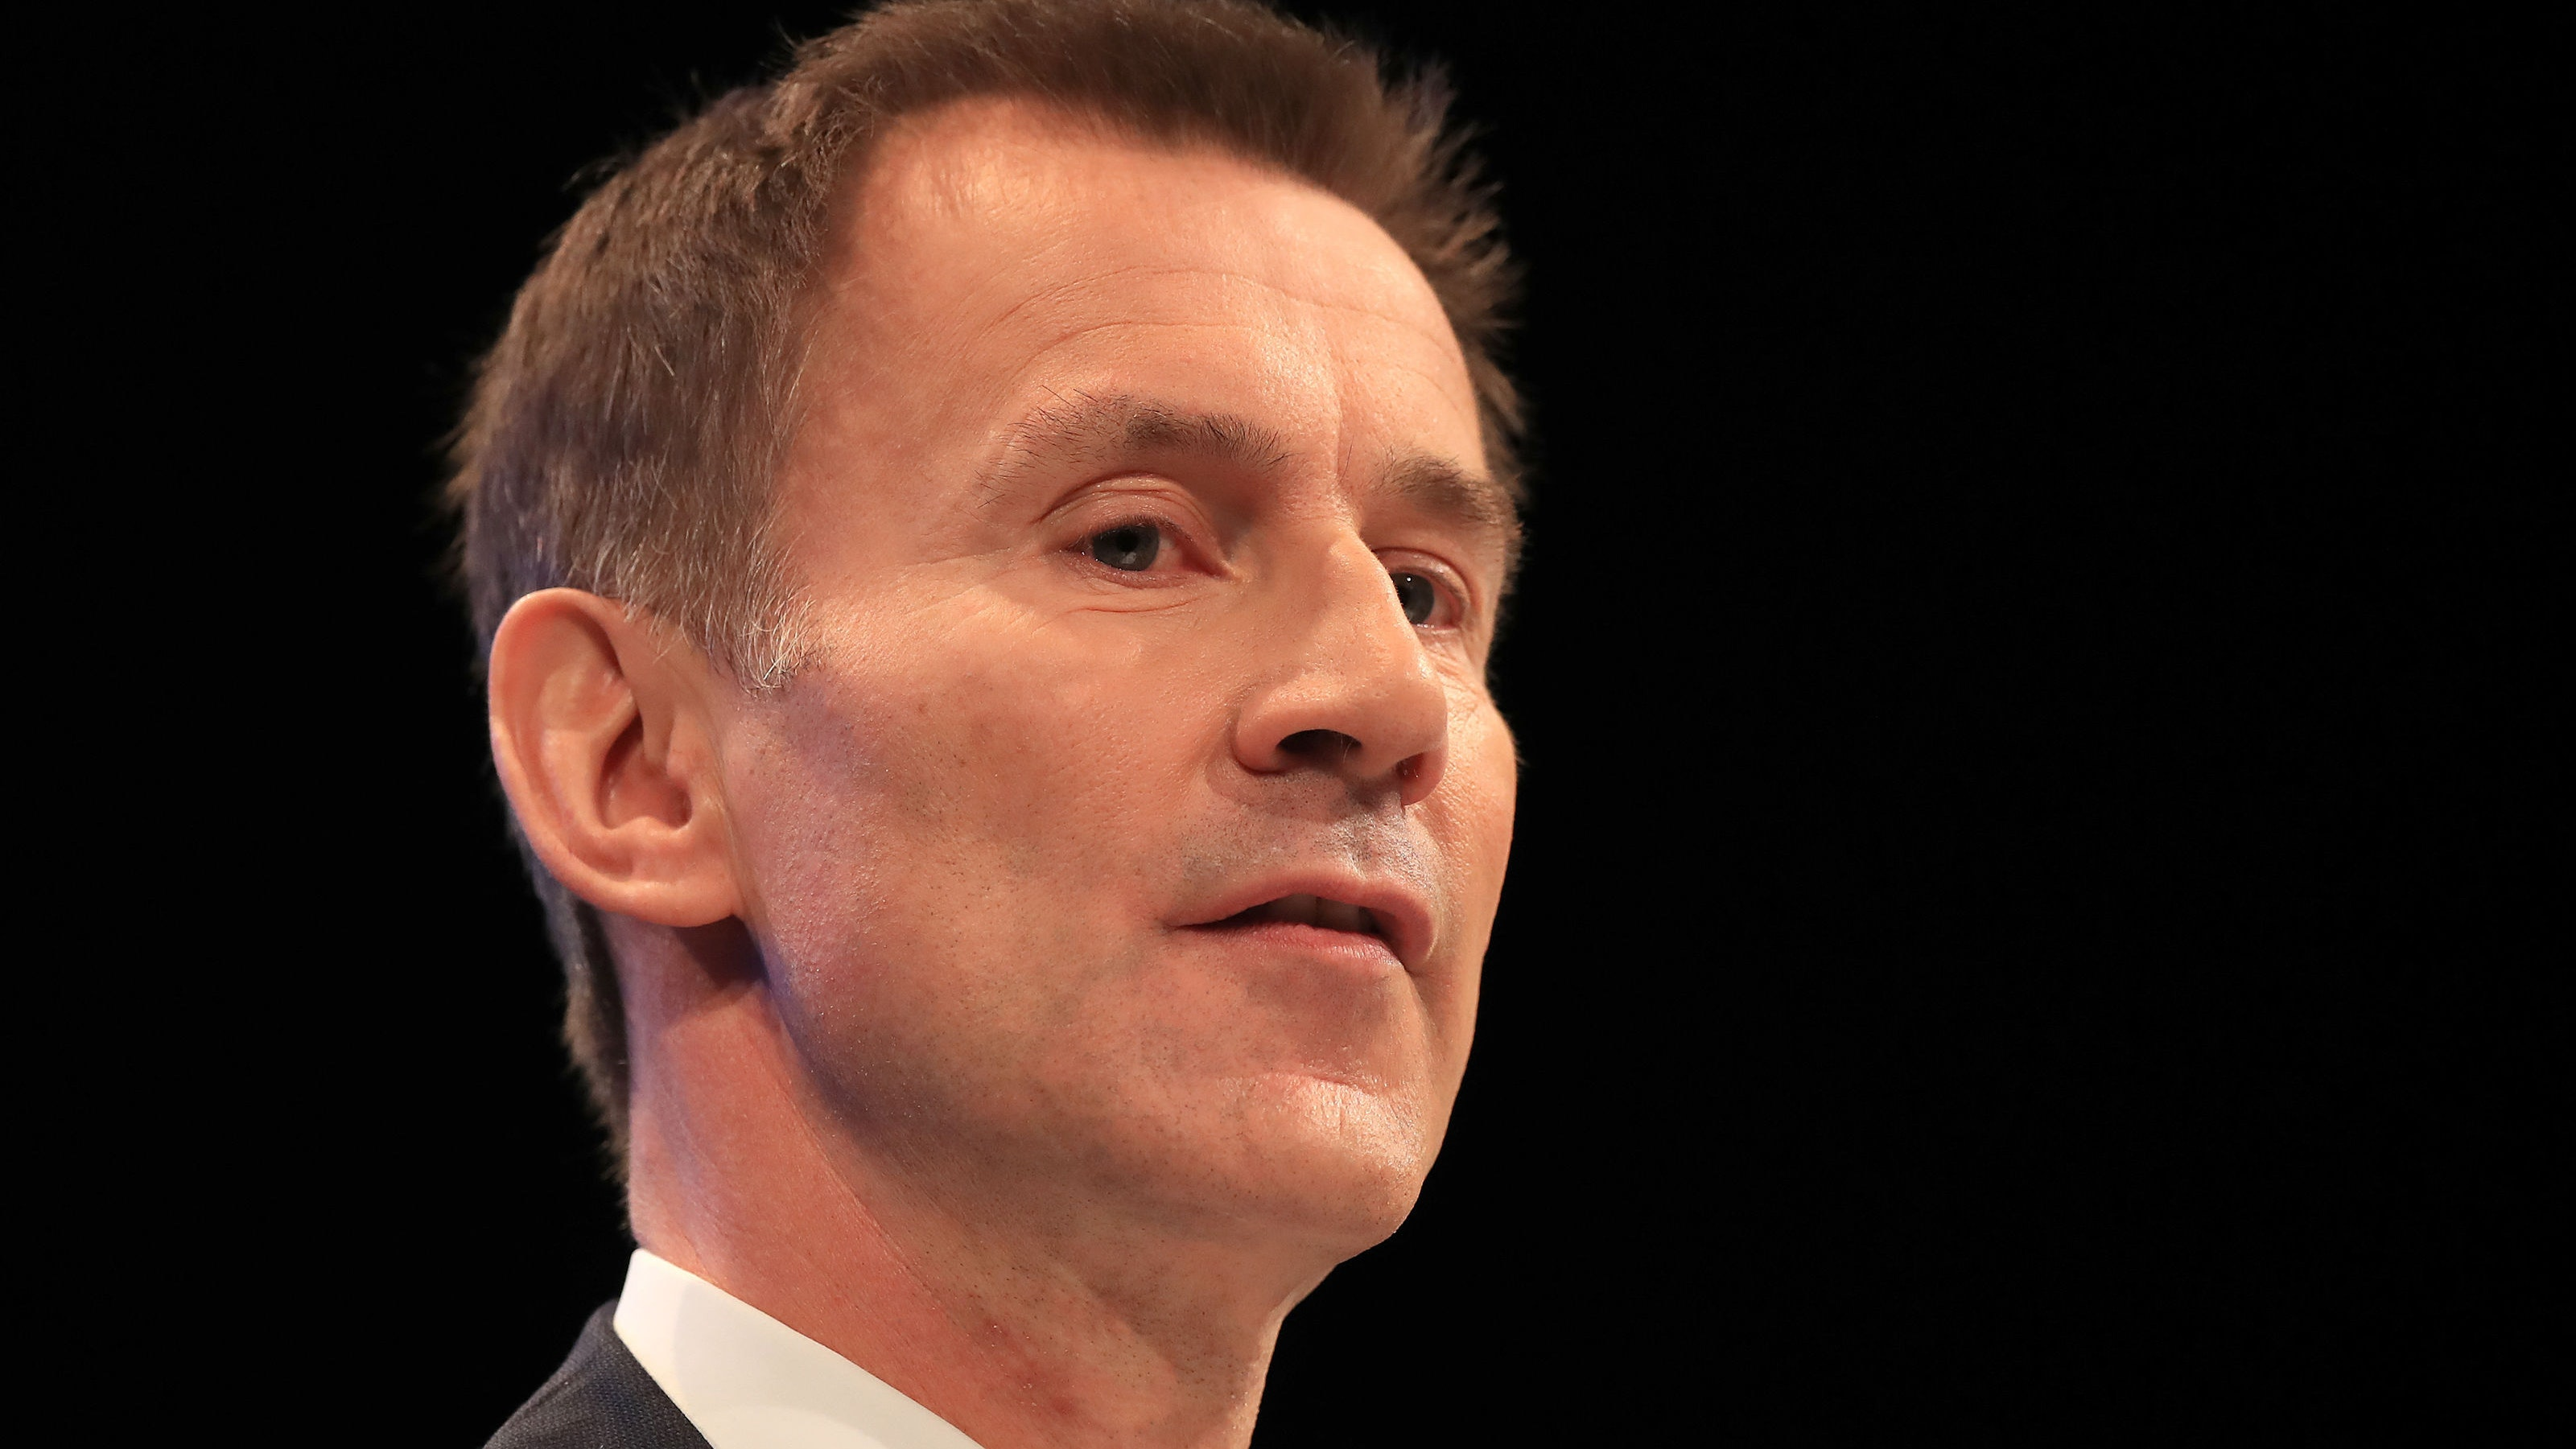 Tax hikes may have to fund extra NHS spending, says health secretary